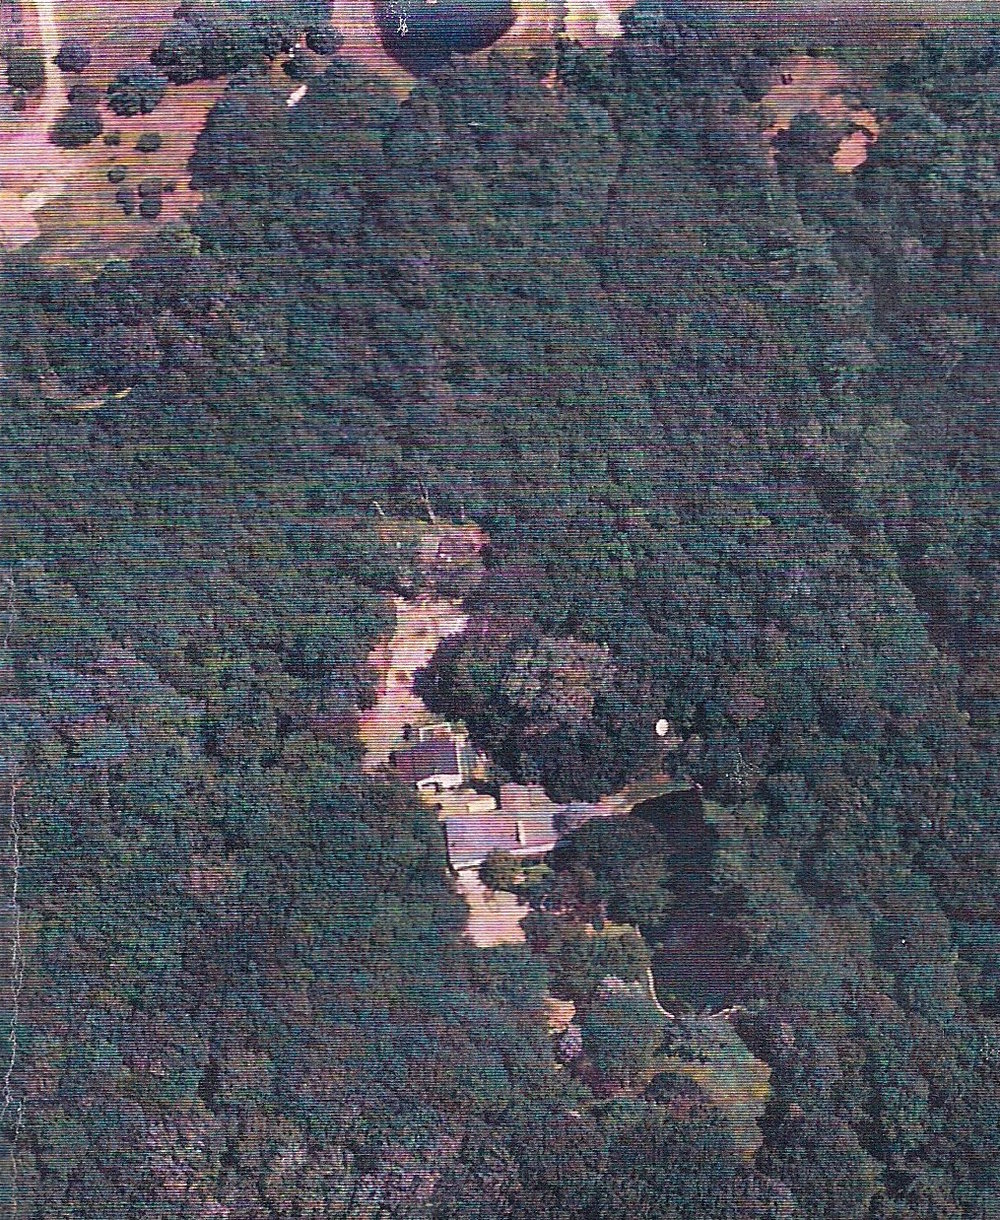 The property in East Greenwich was surrounded by hundreds of acres of woods, making it hard to surveil. The Drug Enforcement Administration still found ways to keep tabs on him, however, taking aerial photographs such as the one above.